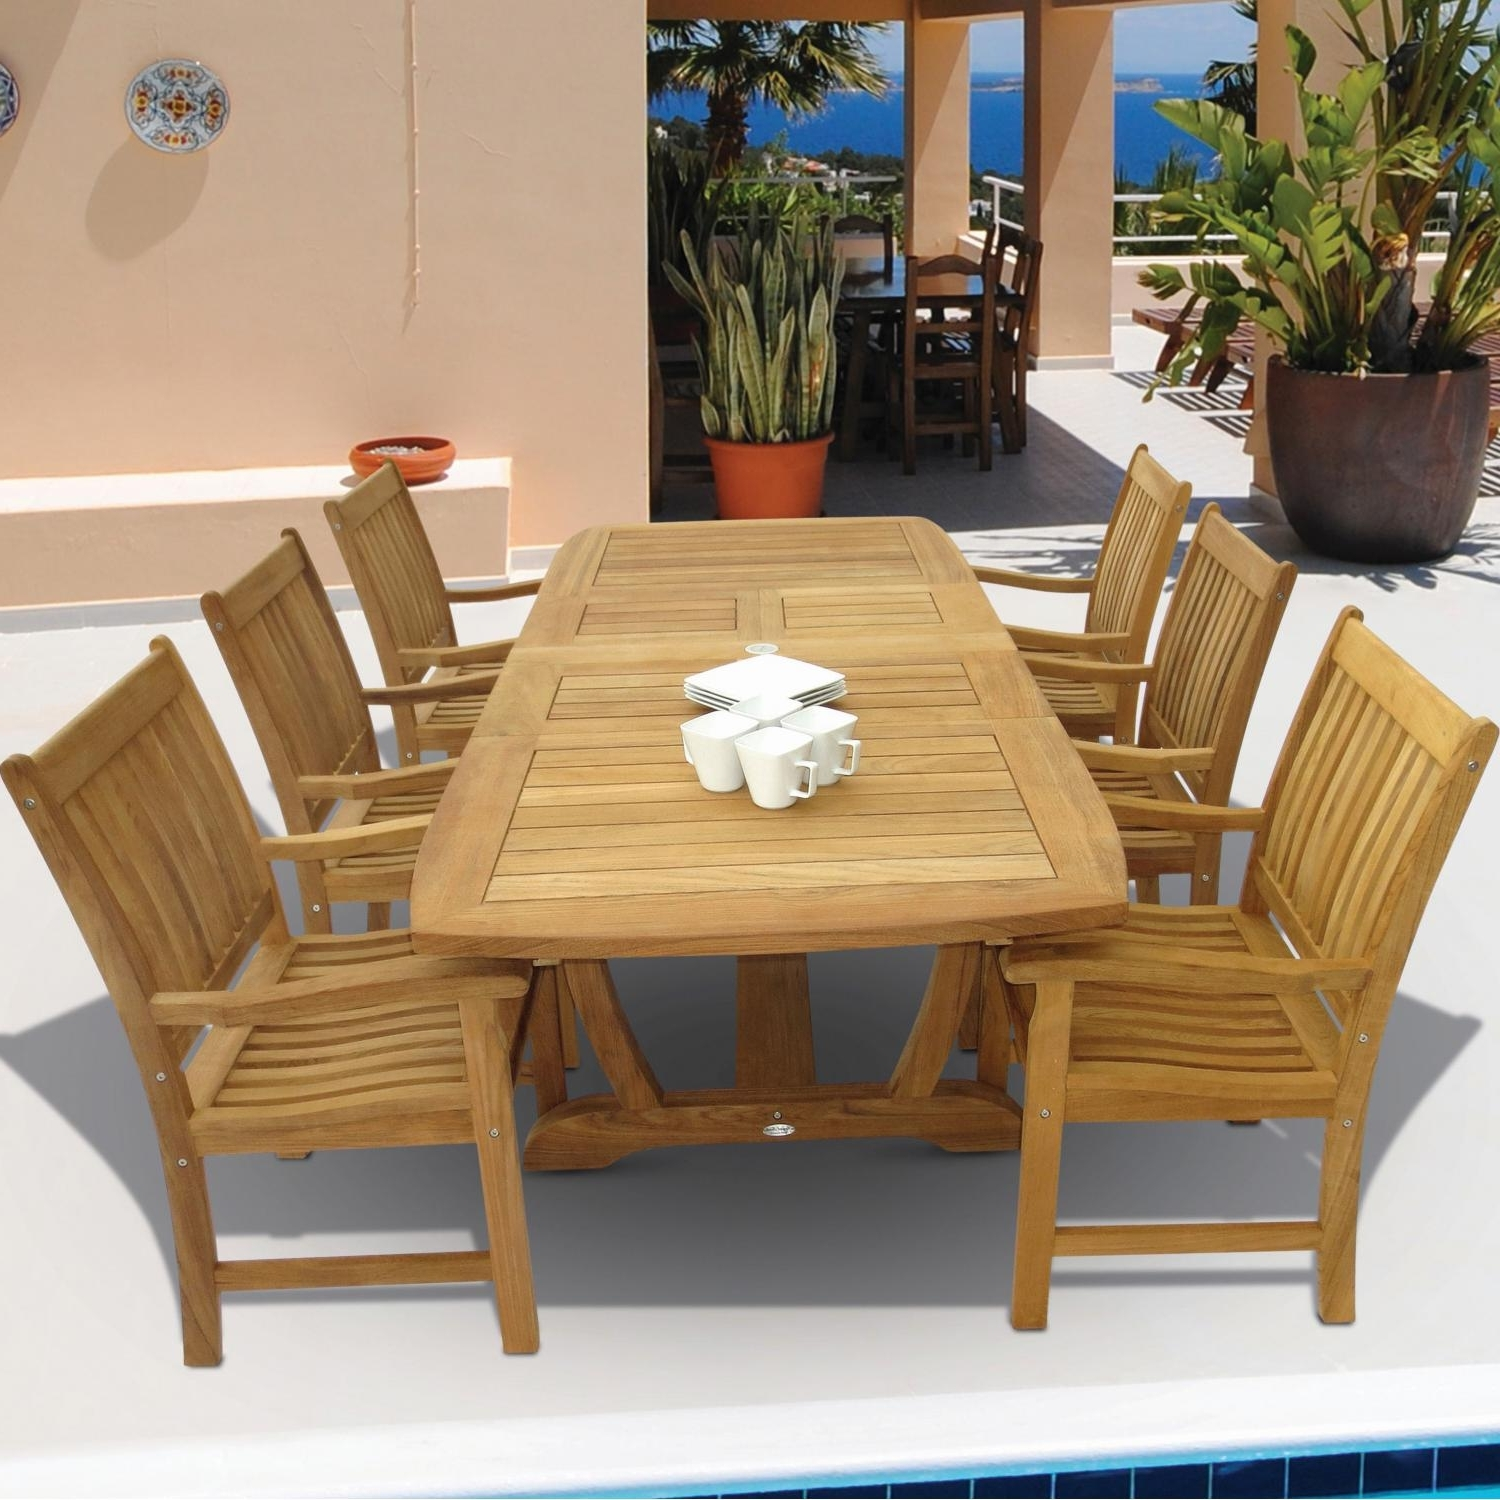 Craftsman 7 Piece Rectangle Extension Dining Sets With Arm & Side Chairs Pertaining To Current Compass 7 Piece Teak Patio Dining Set W/ 64 X 43 Inch Rectangular (View 24 of 25)